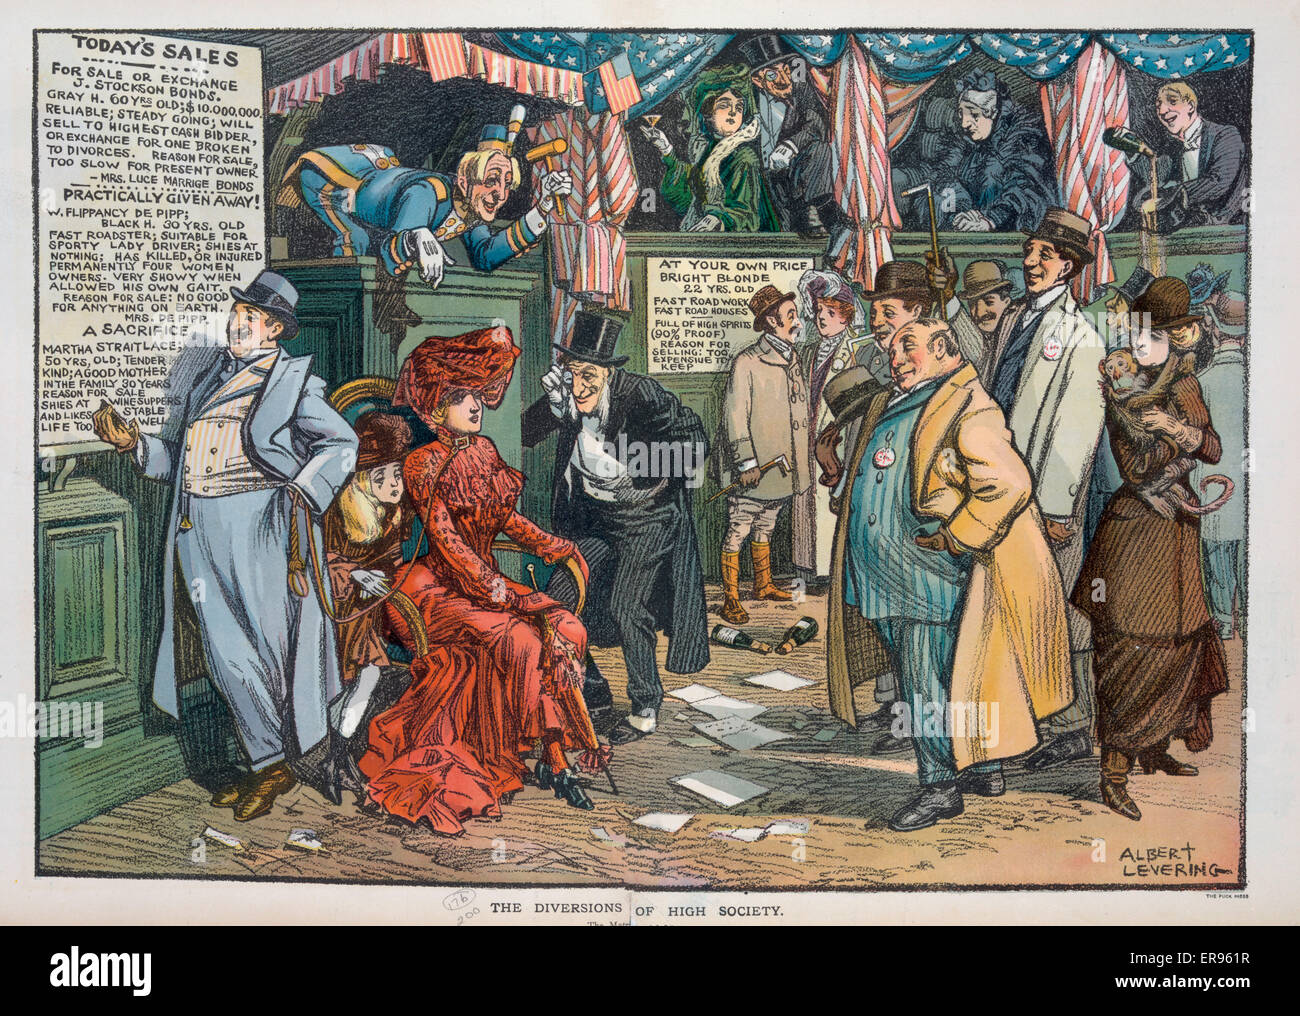 The diversions of high society. Illustration shows a high society auction being conducted in a circus-like atmosphere - Stock Image